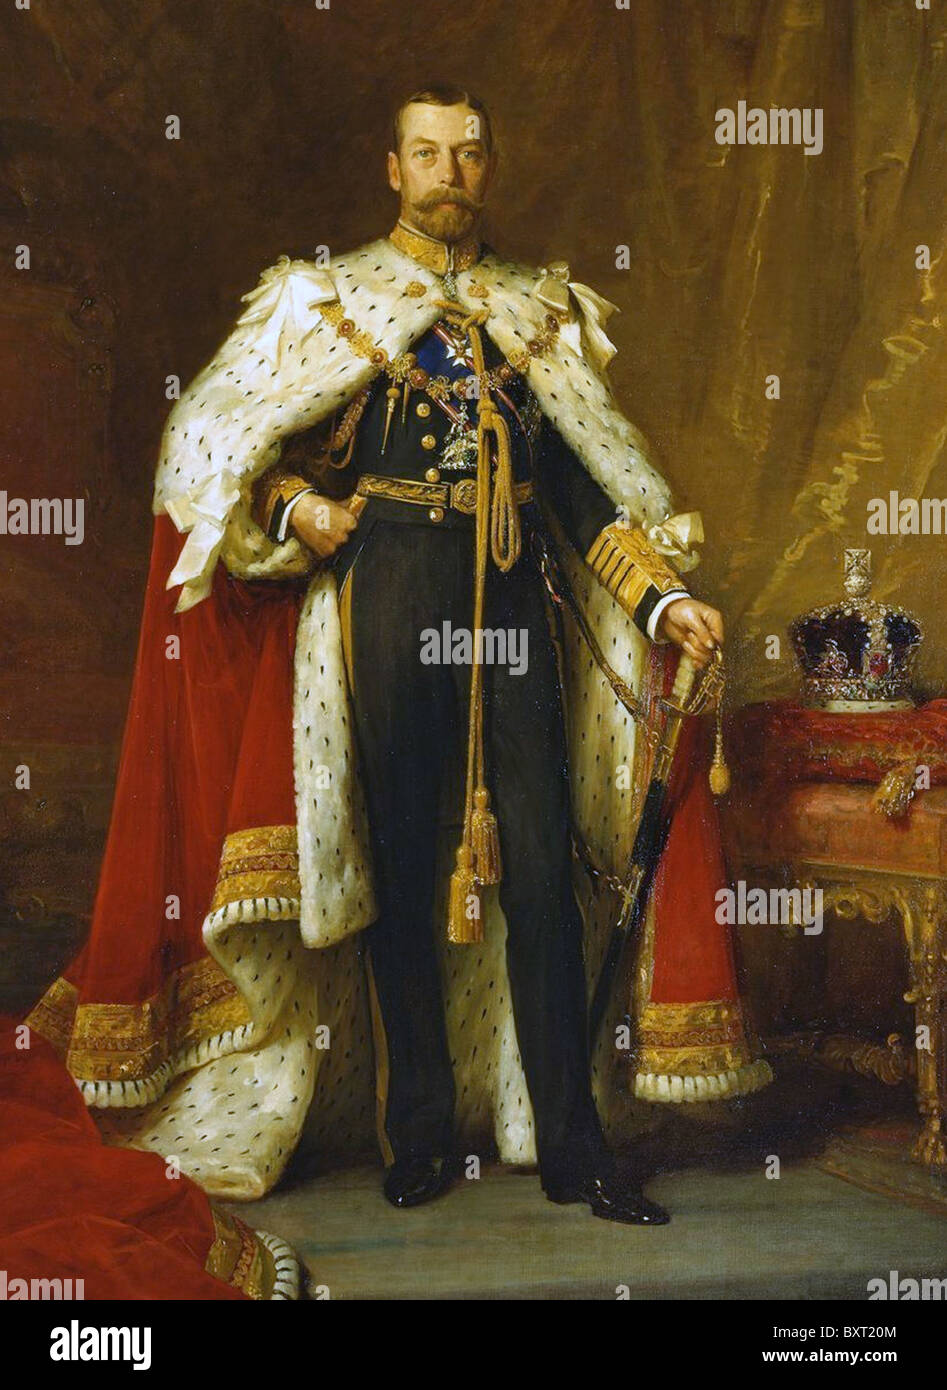 KING GEORGE V (1865-1936) British monarch in his Coronation robes painted by Sir Luke Fildes in 1911 - Stock Image